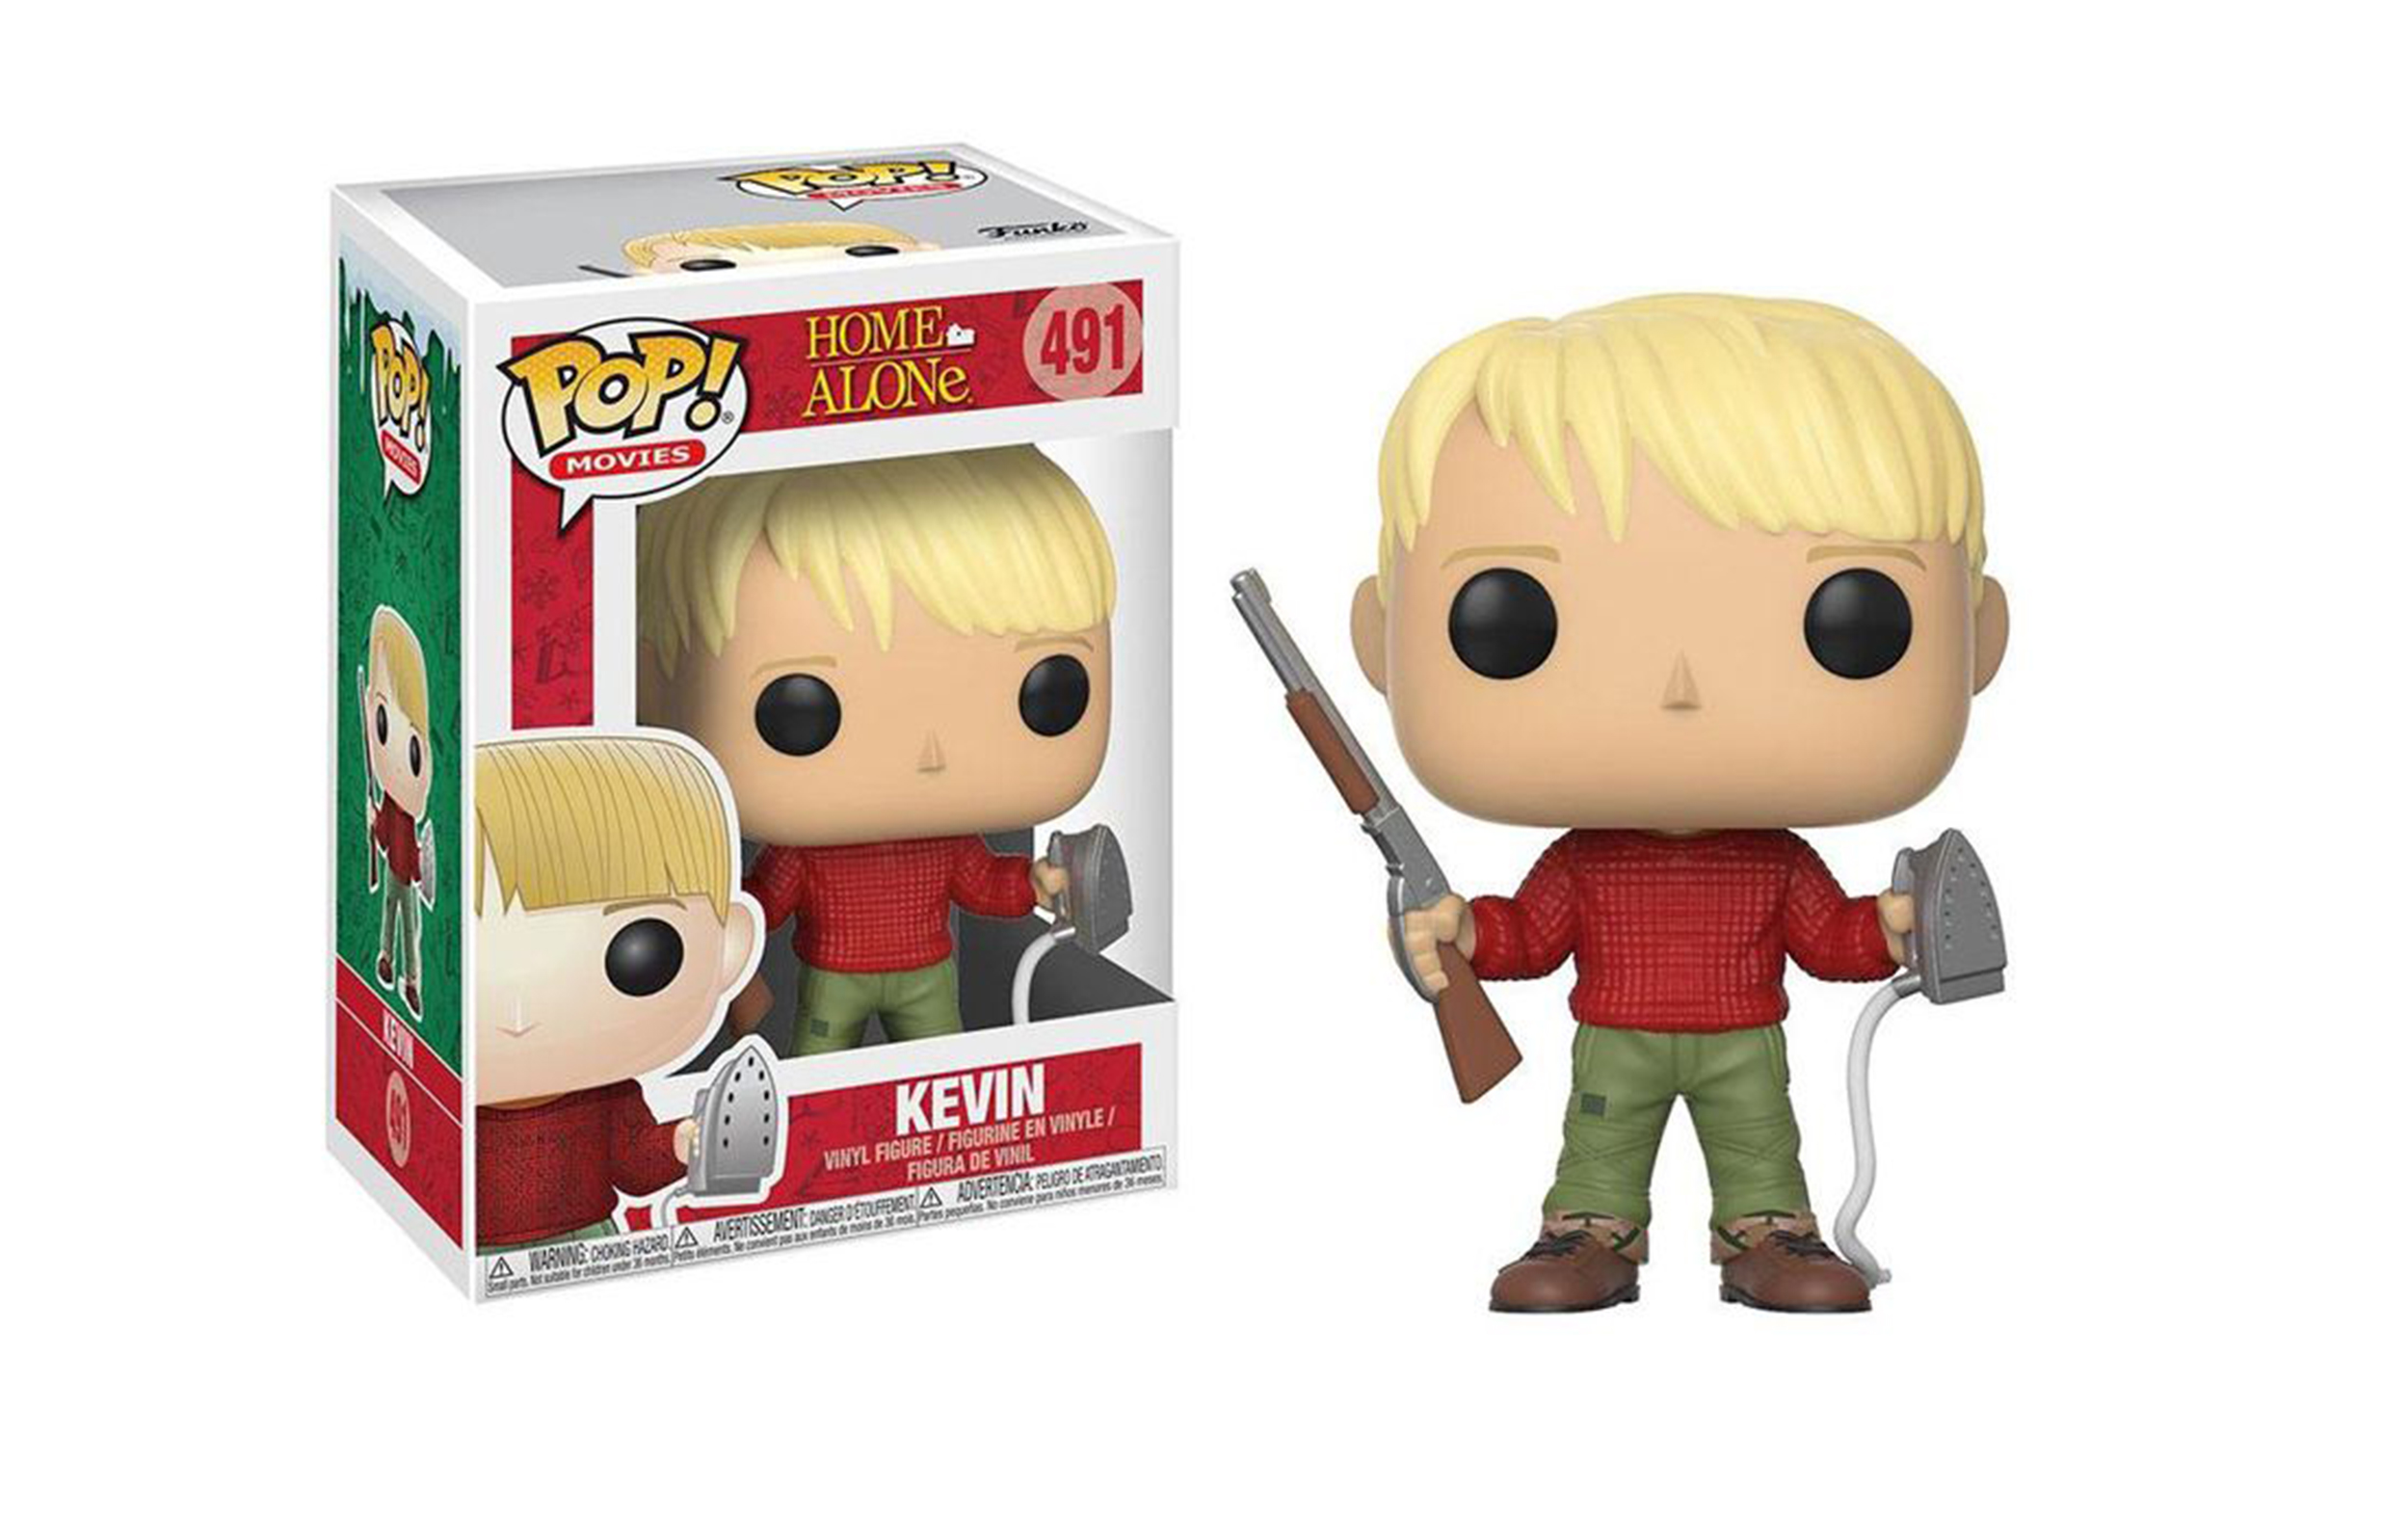 Home Alone Kevin 491 Funko POP Vinyl Figure